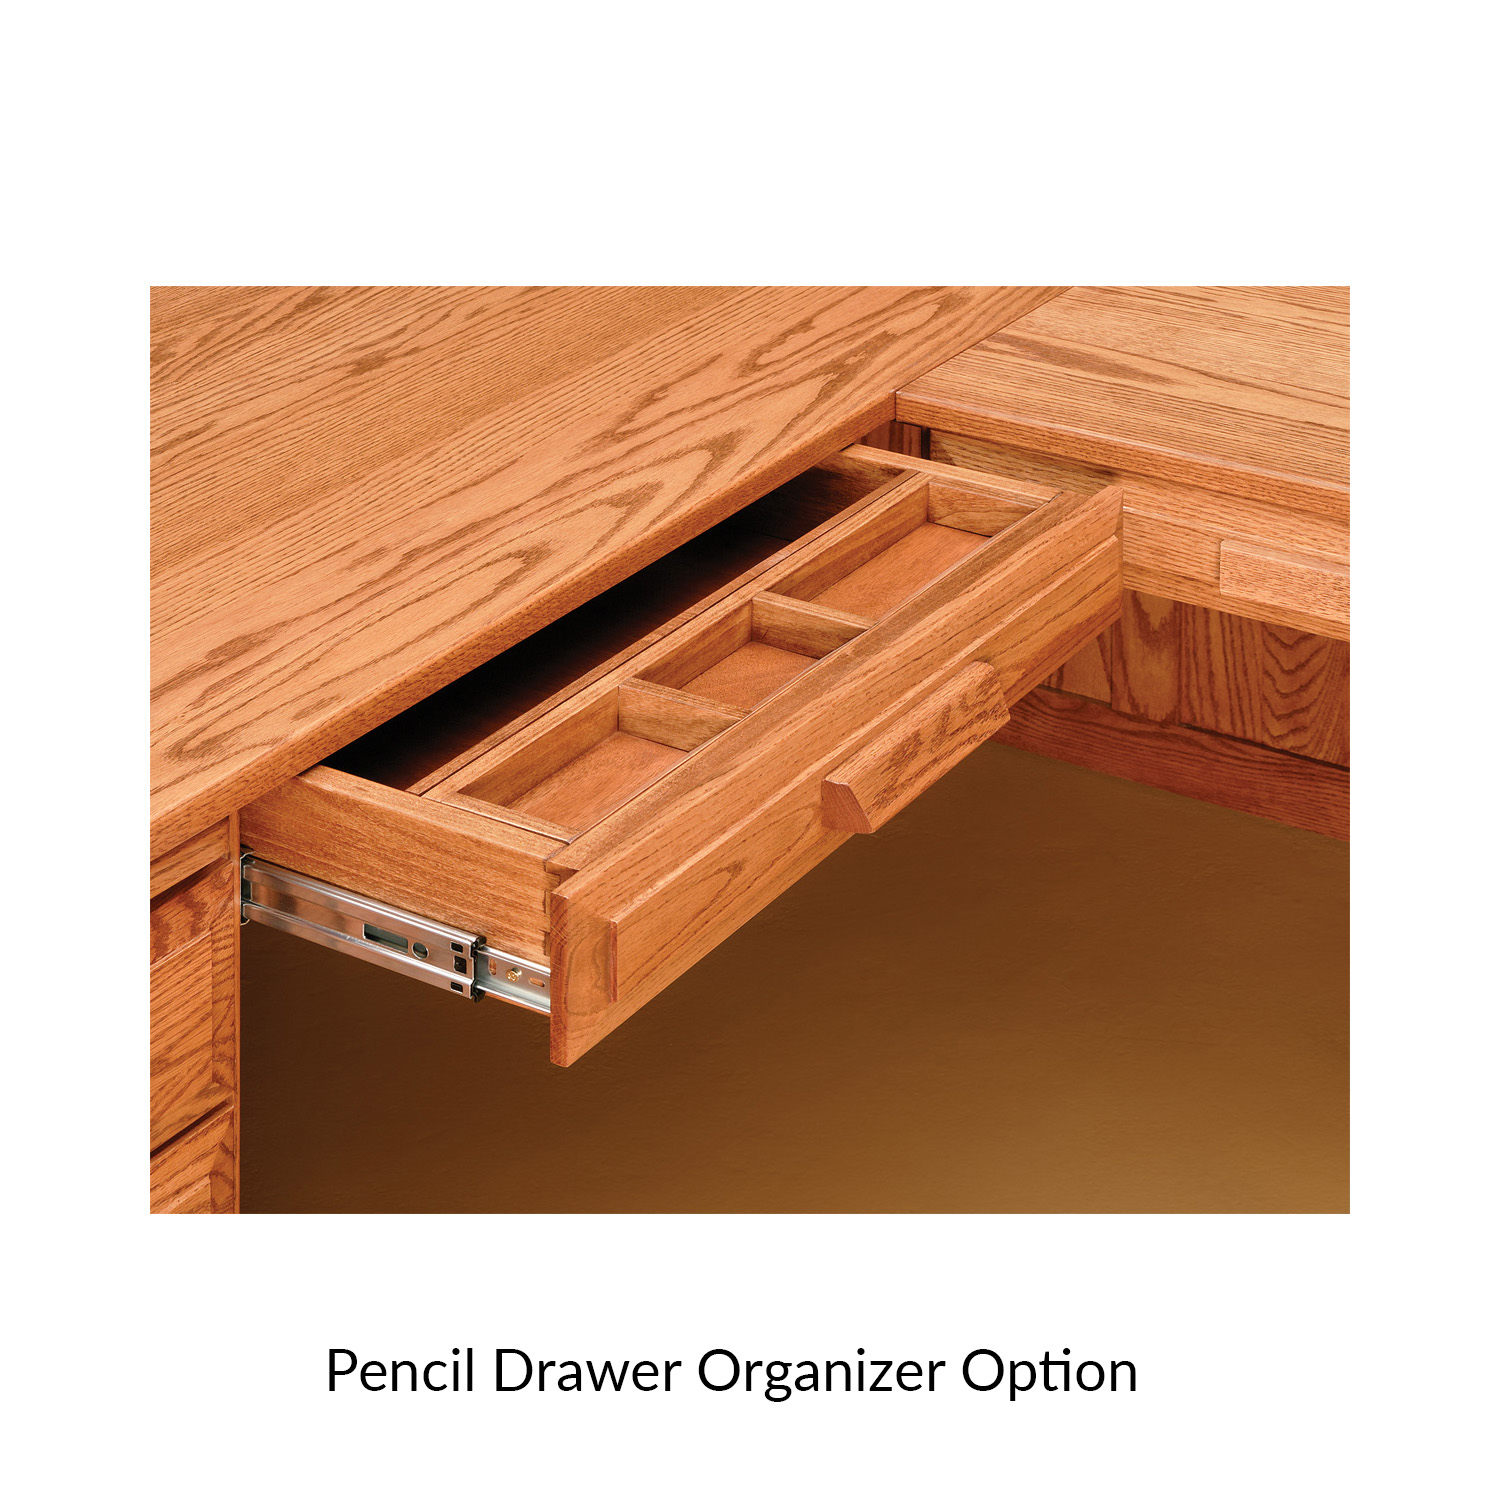 13.1-pencil-drawer-organizer-option.jpg